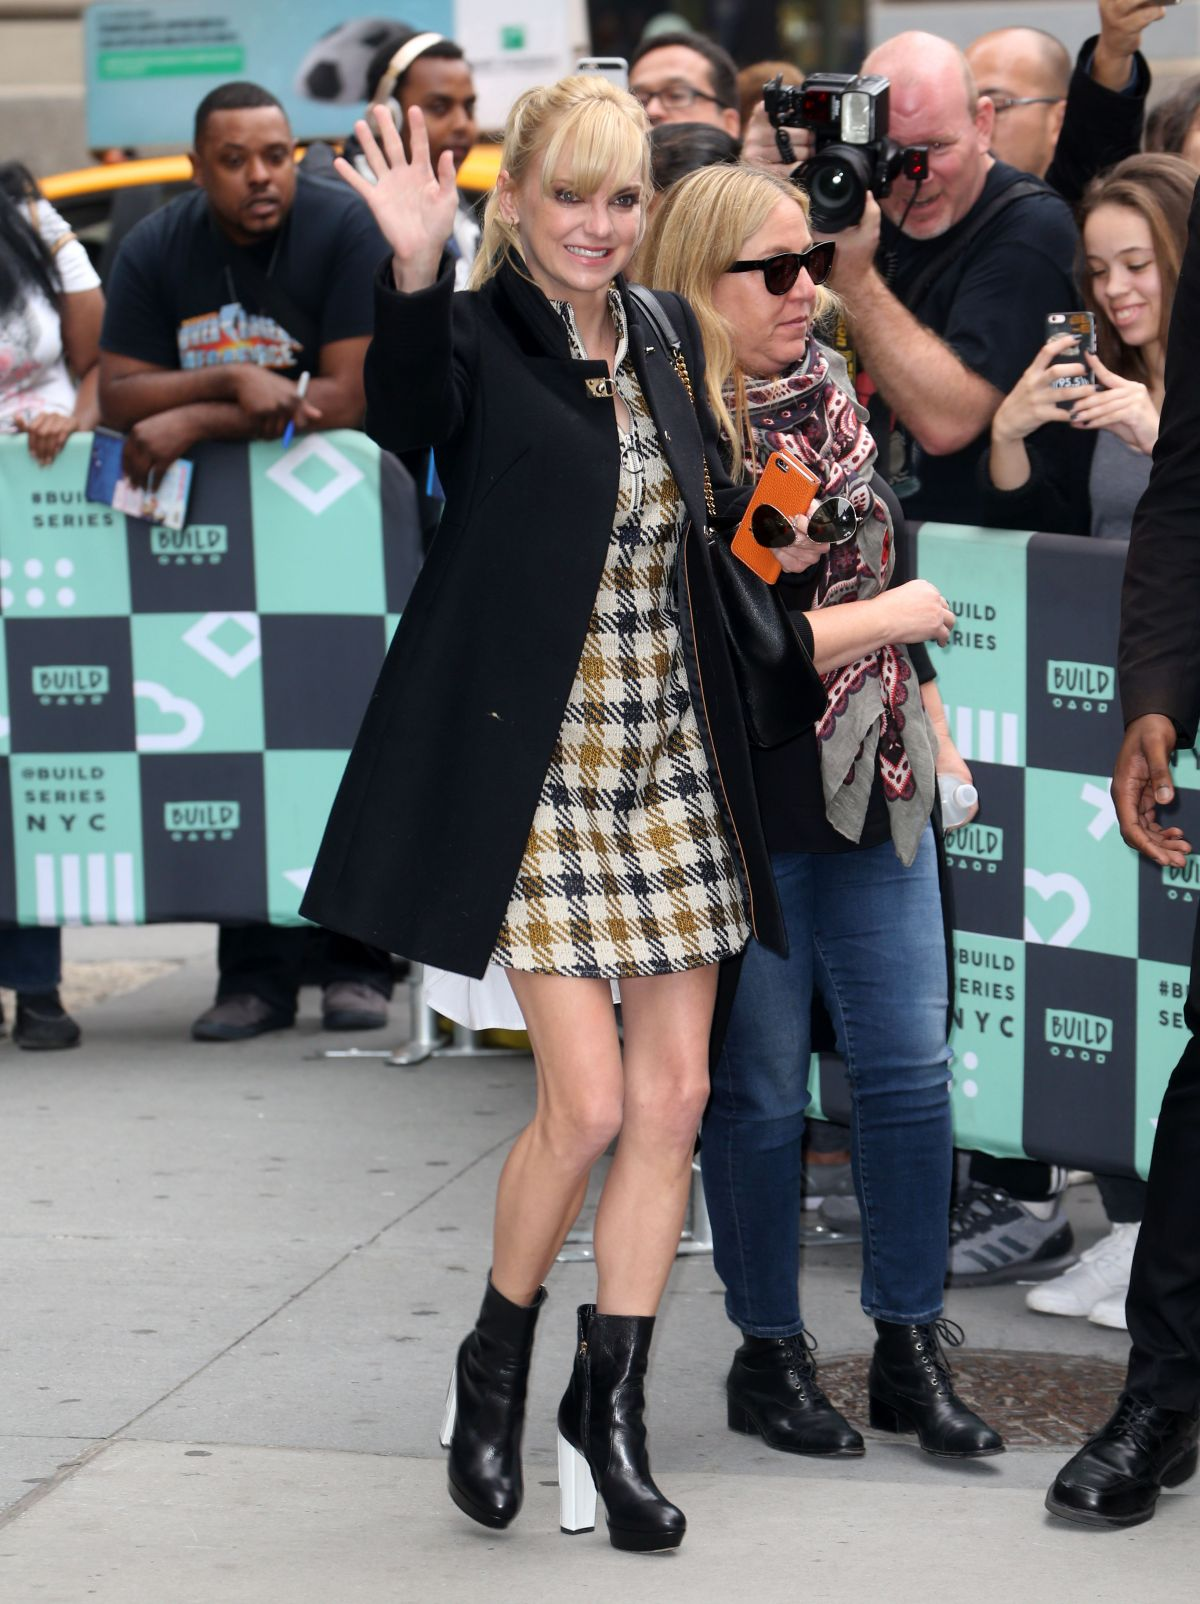 Anna Faris Outside the Build Studios in New York City